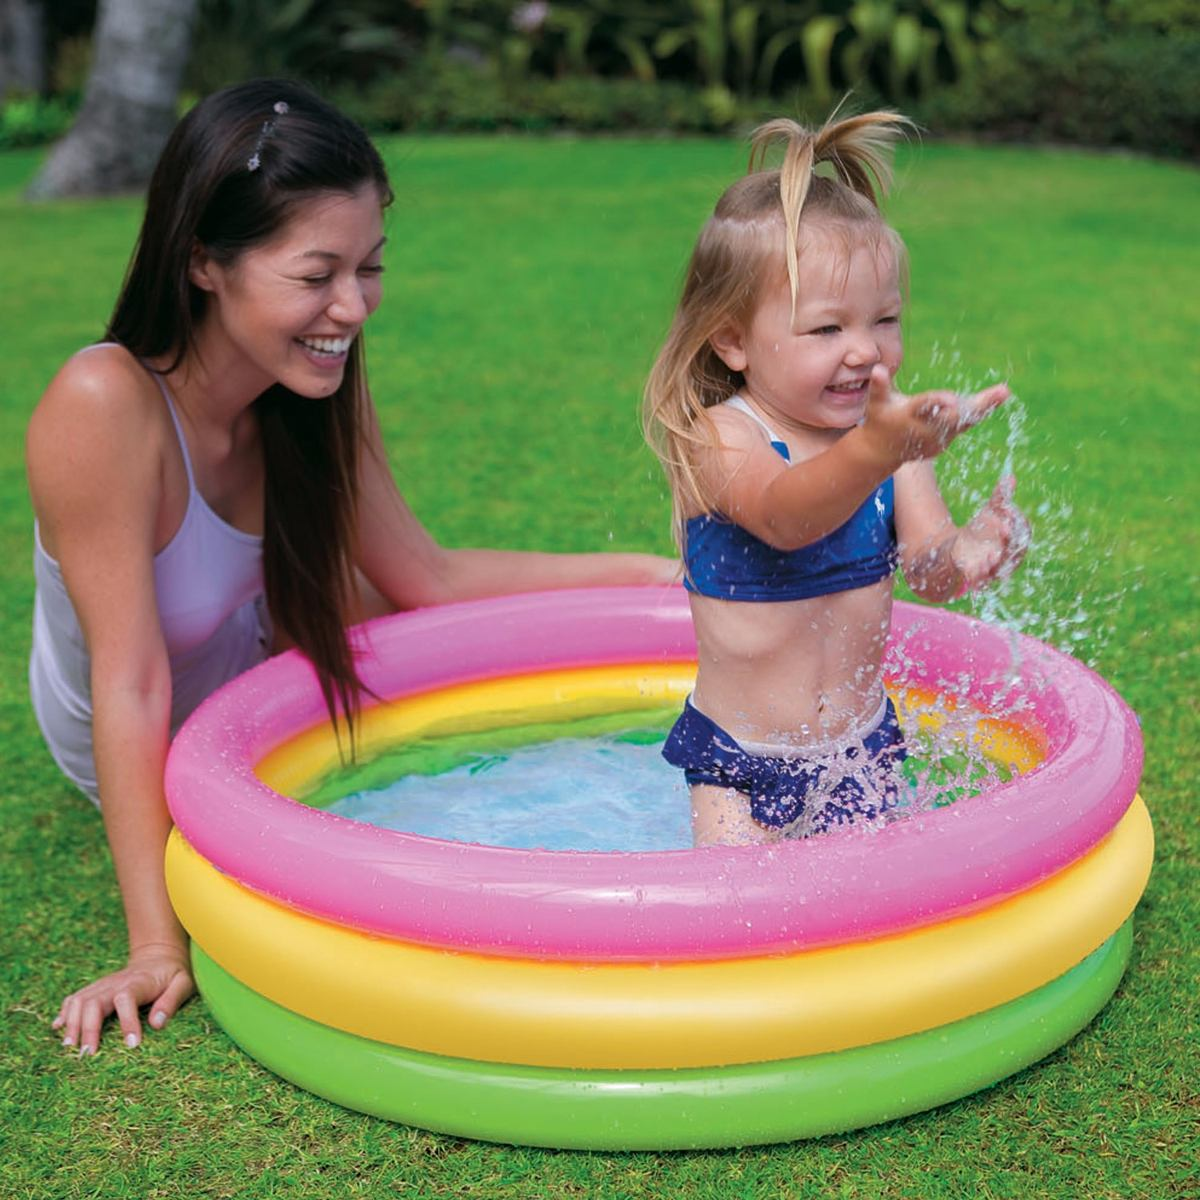 piscina inflable peque a para ni os intex bs 0 10 en